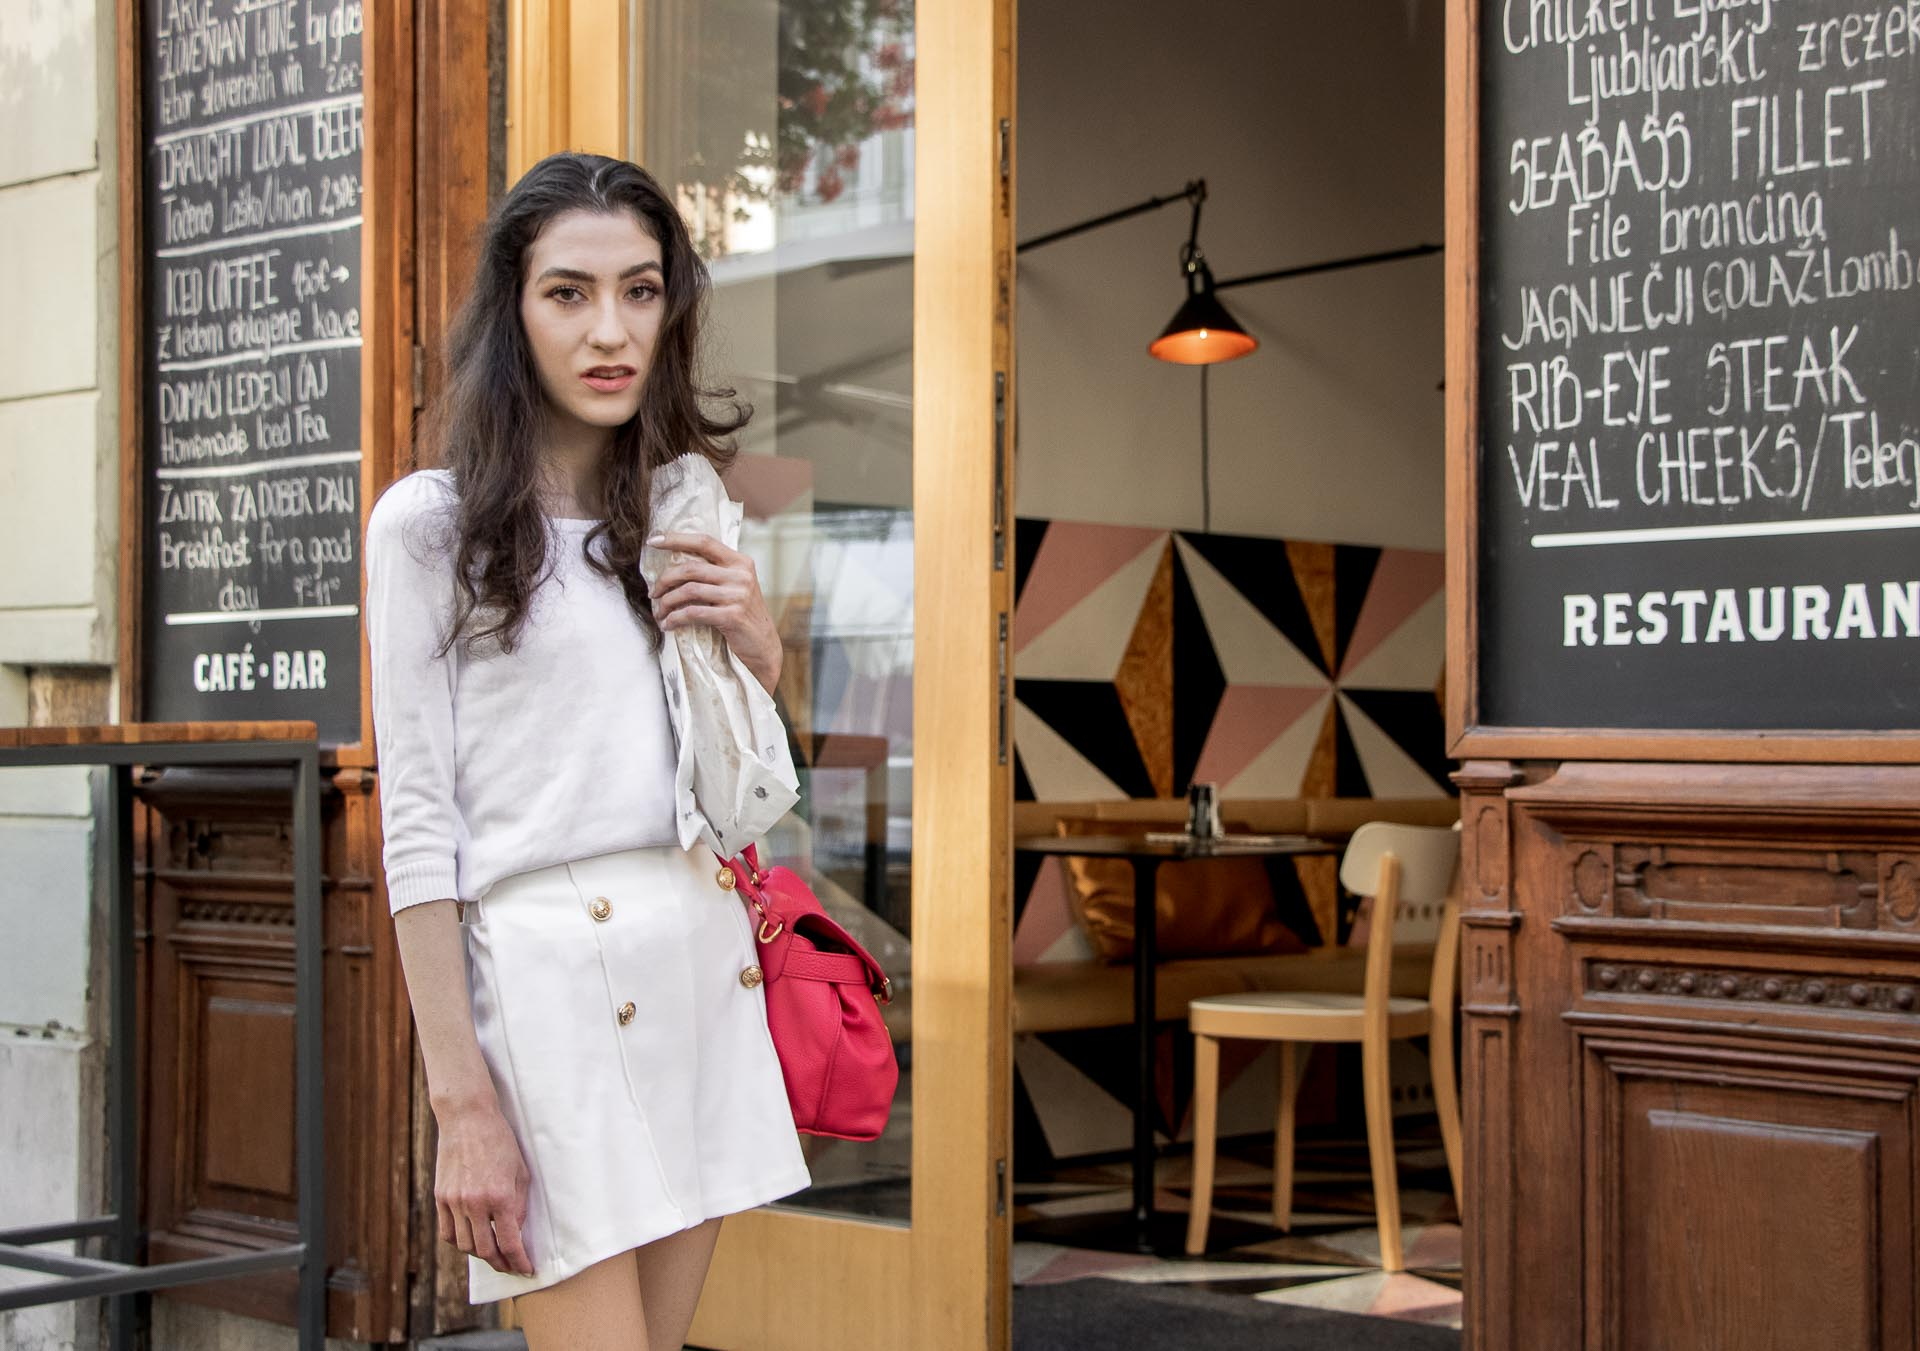 Slovenska modna blogerka Veronika Lipar of Brunette from Wall wearing all in white outfit, a white sweater, white tailored shorts, pink top handle bag, a paper bag on the street in Ljubljana